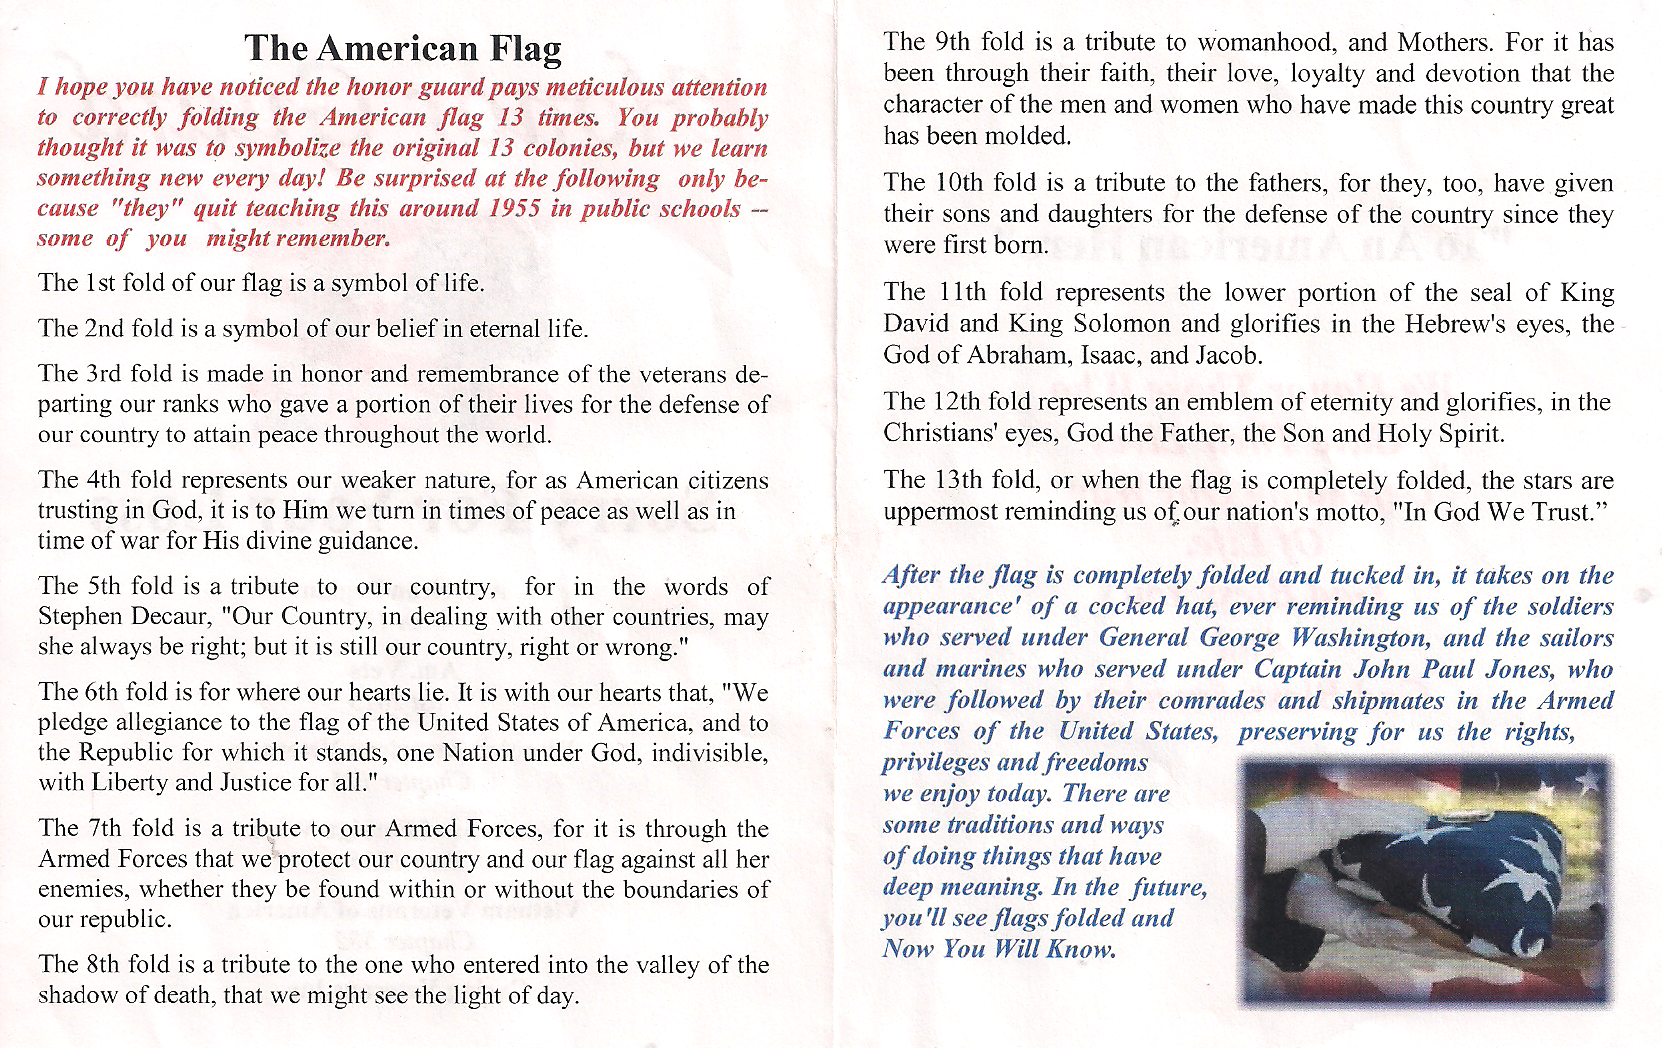 The Meaning Of The Folding Of The American Flag